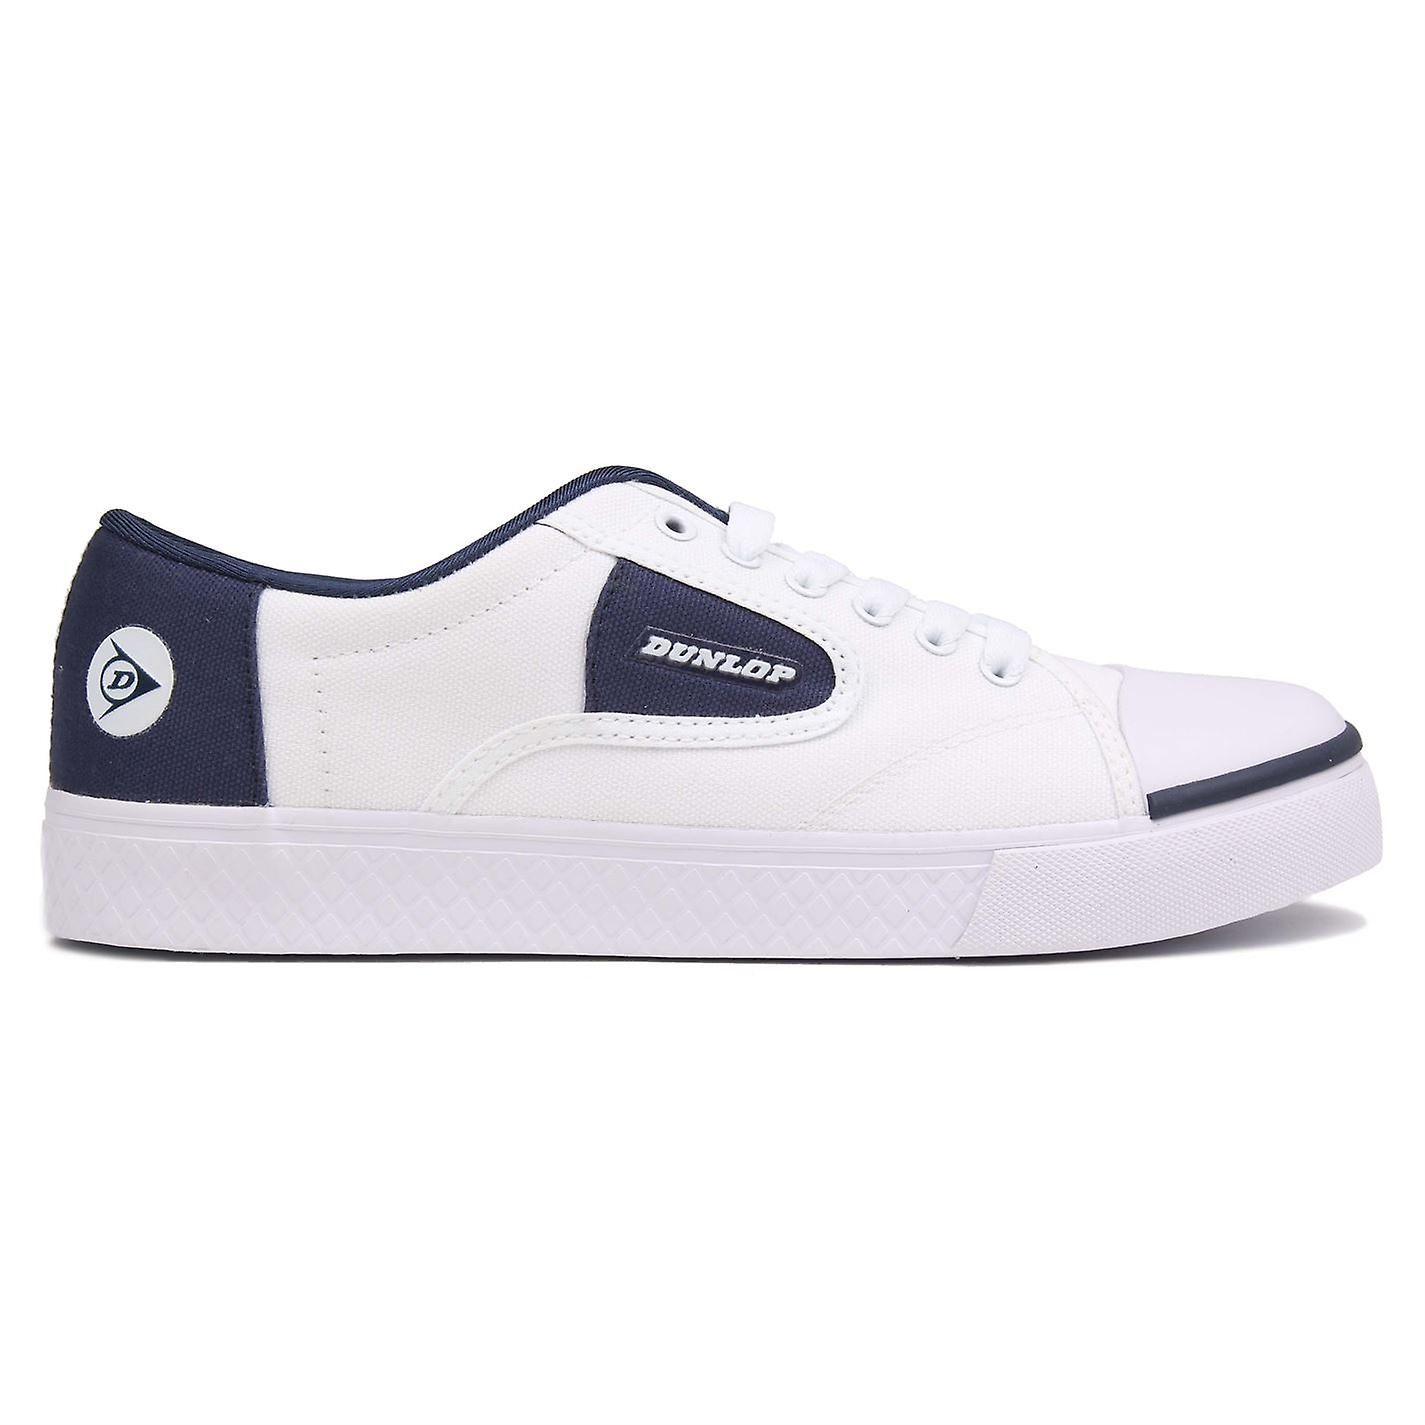 Dunlop Mens Green Flash Canvas Lo Shoes Trainers Footwear